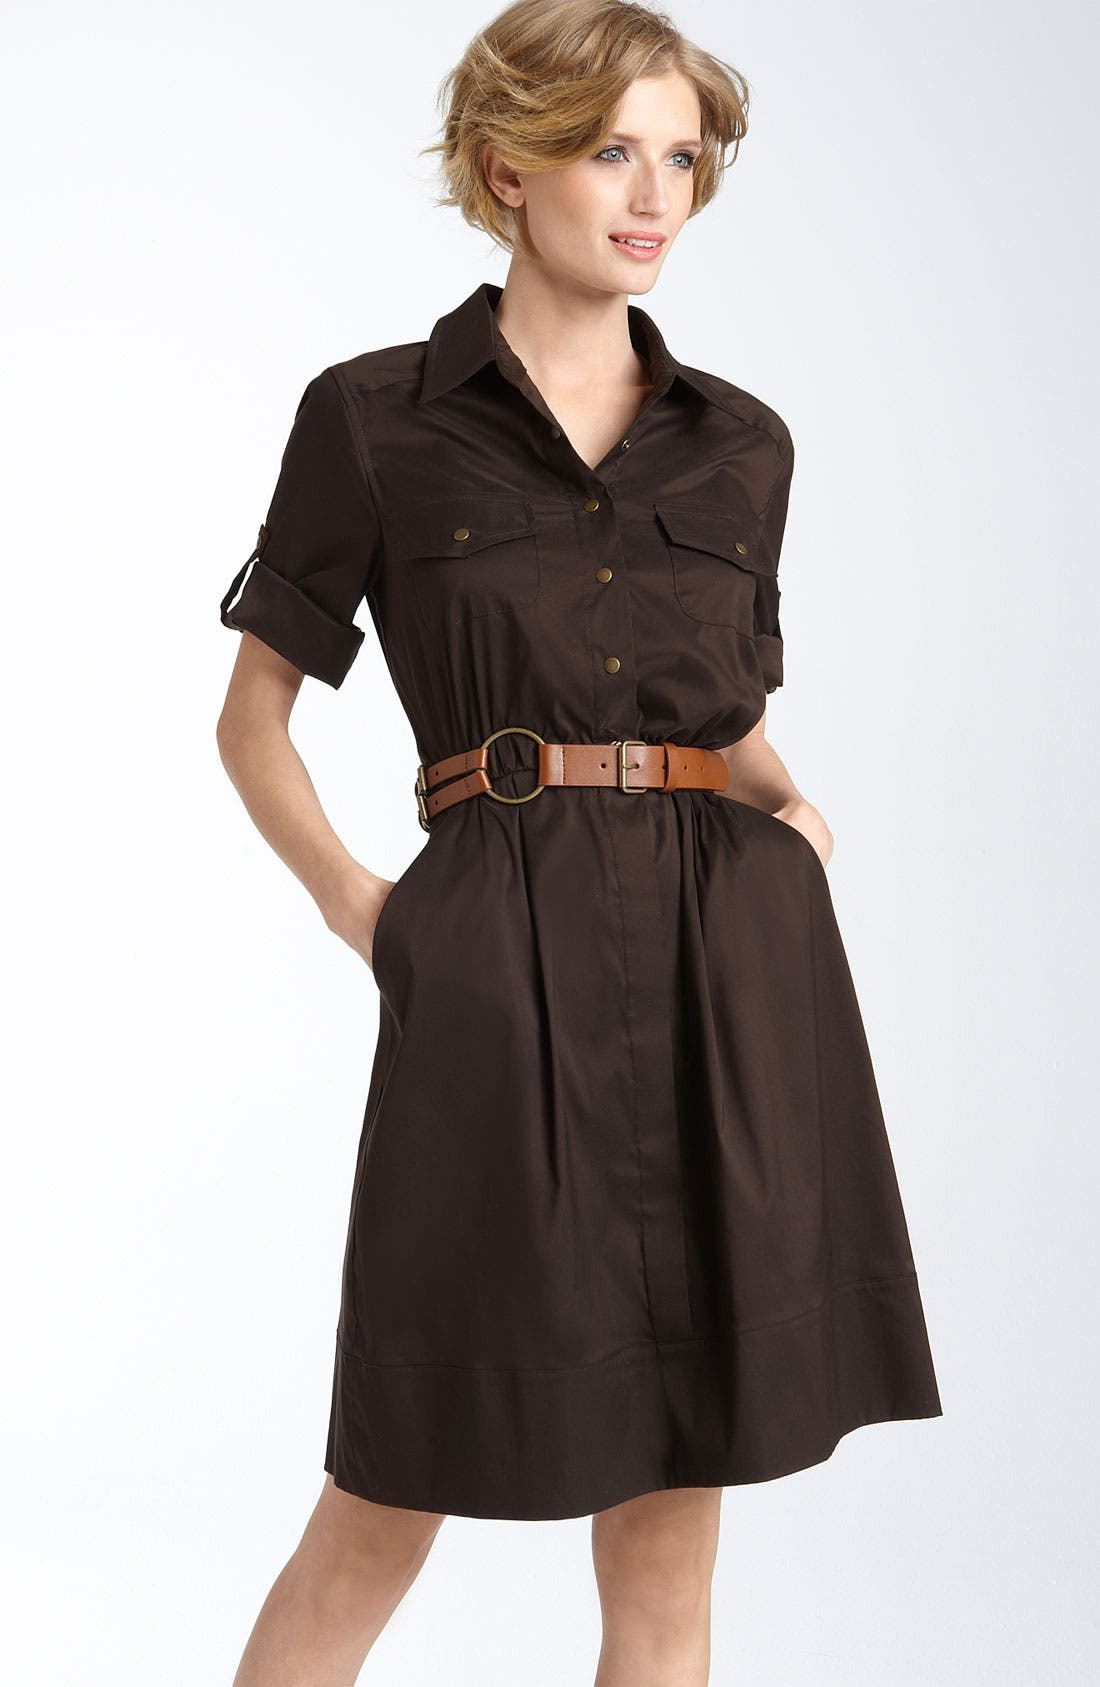 Main Image - Suzi Chin for Maggy Boutique Belted Cotton Blend Shirtdress